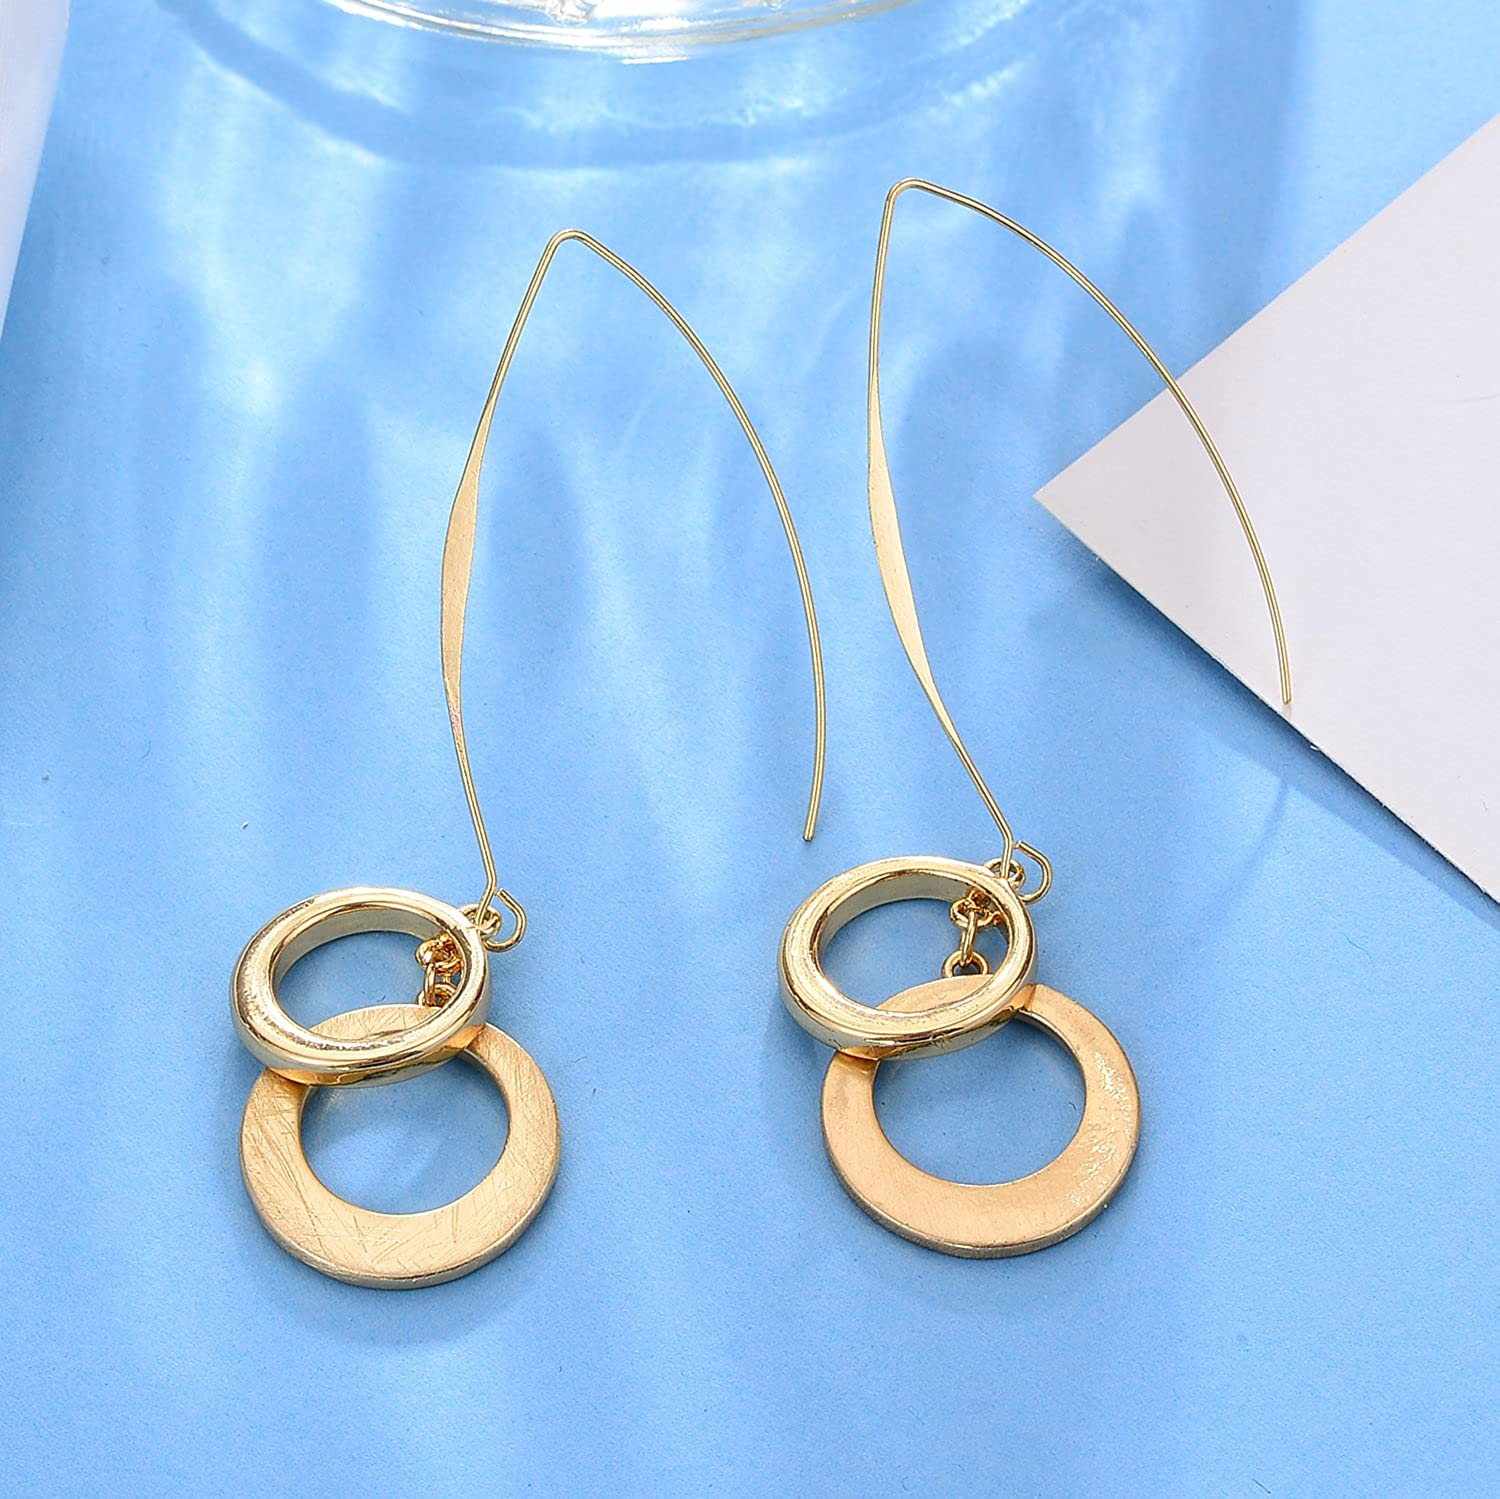 Exaggerate Long Fishhook with Round Pendant Gold and Silver Plated Drop Earrings